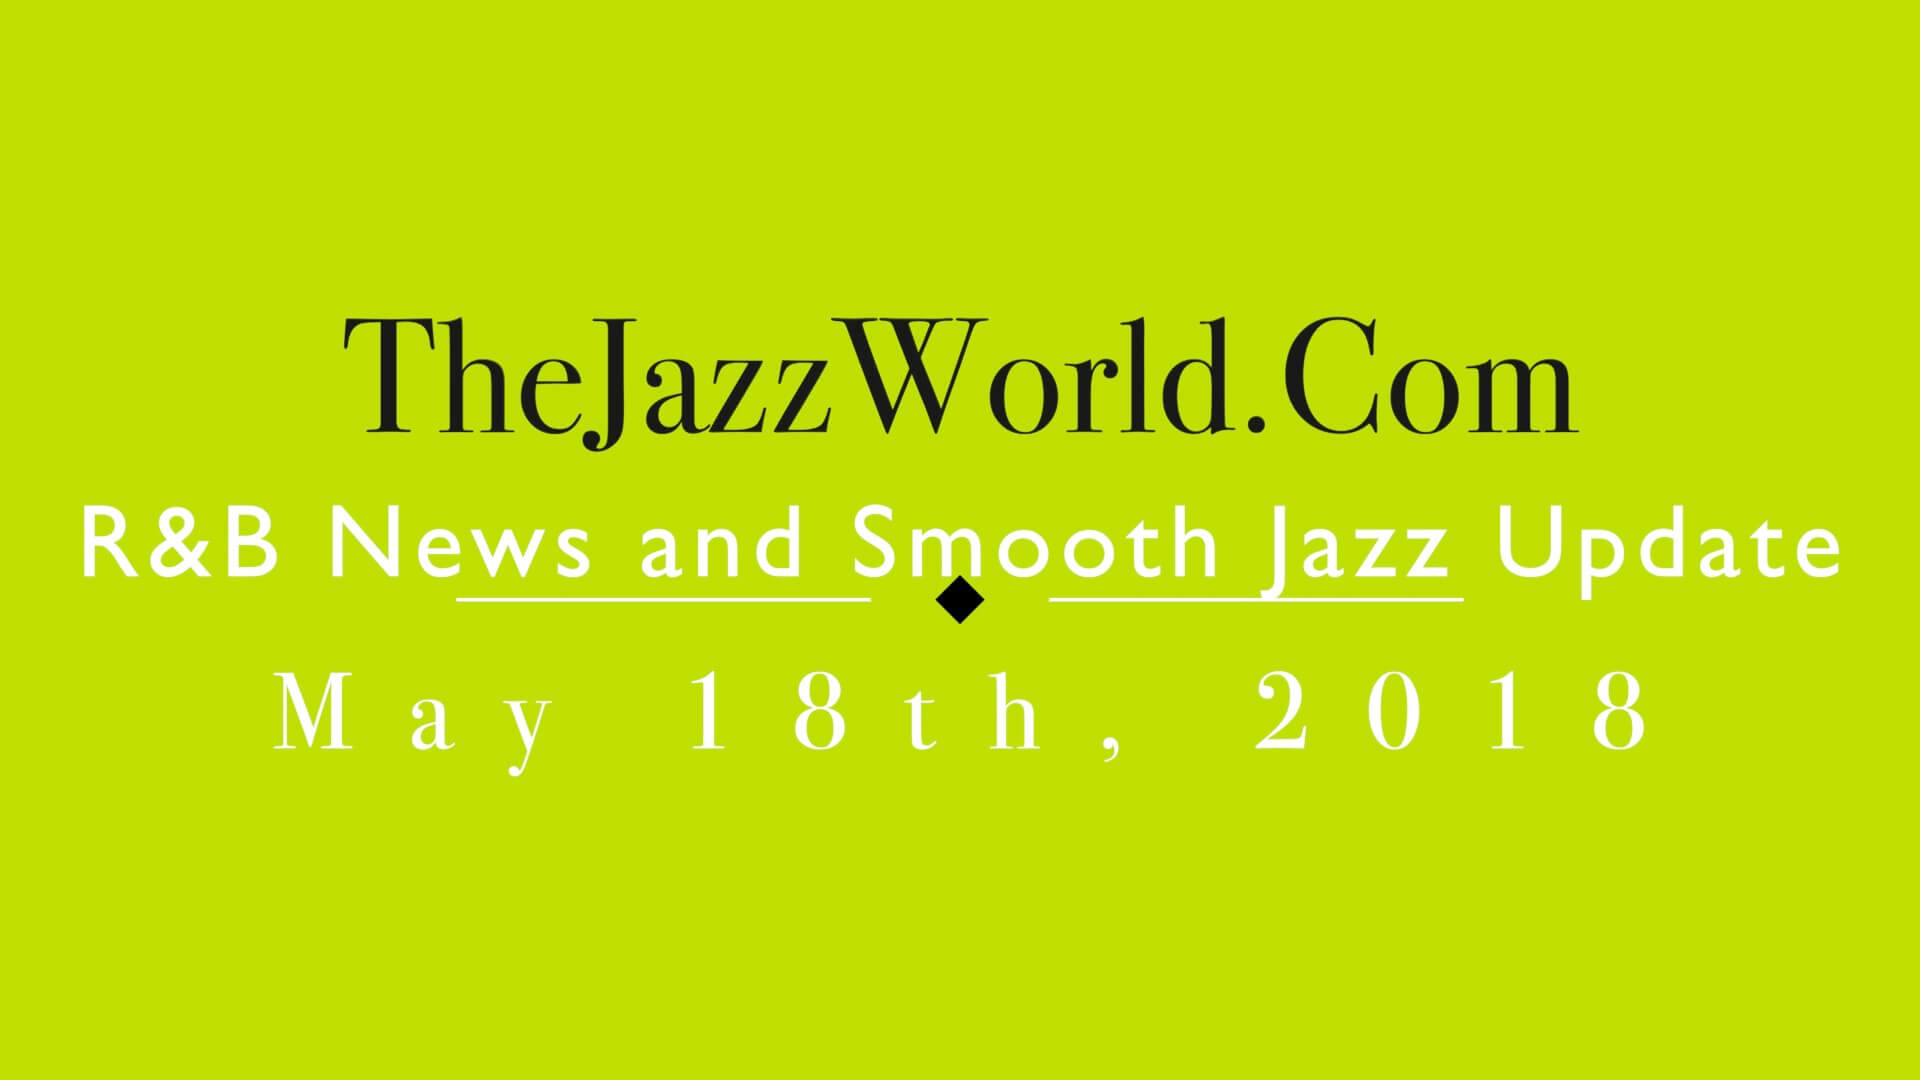 Latest R&B News and Smooth Jazz Update May 18th